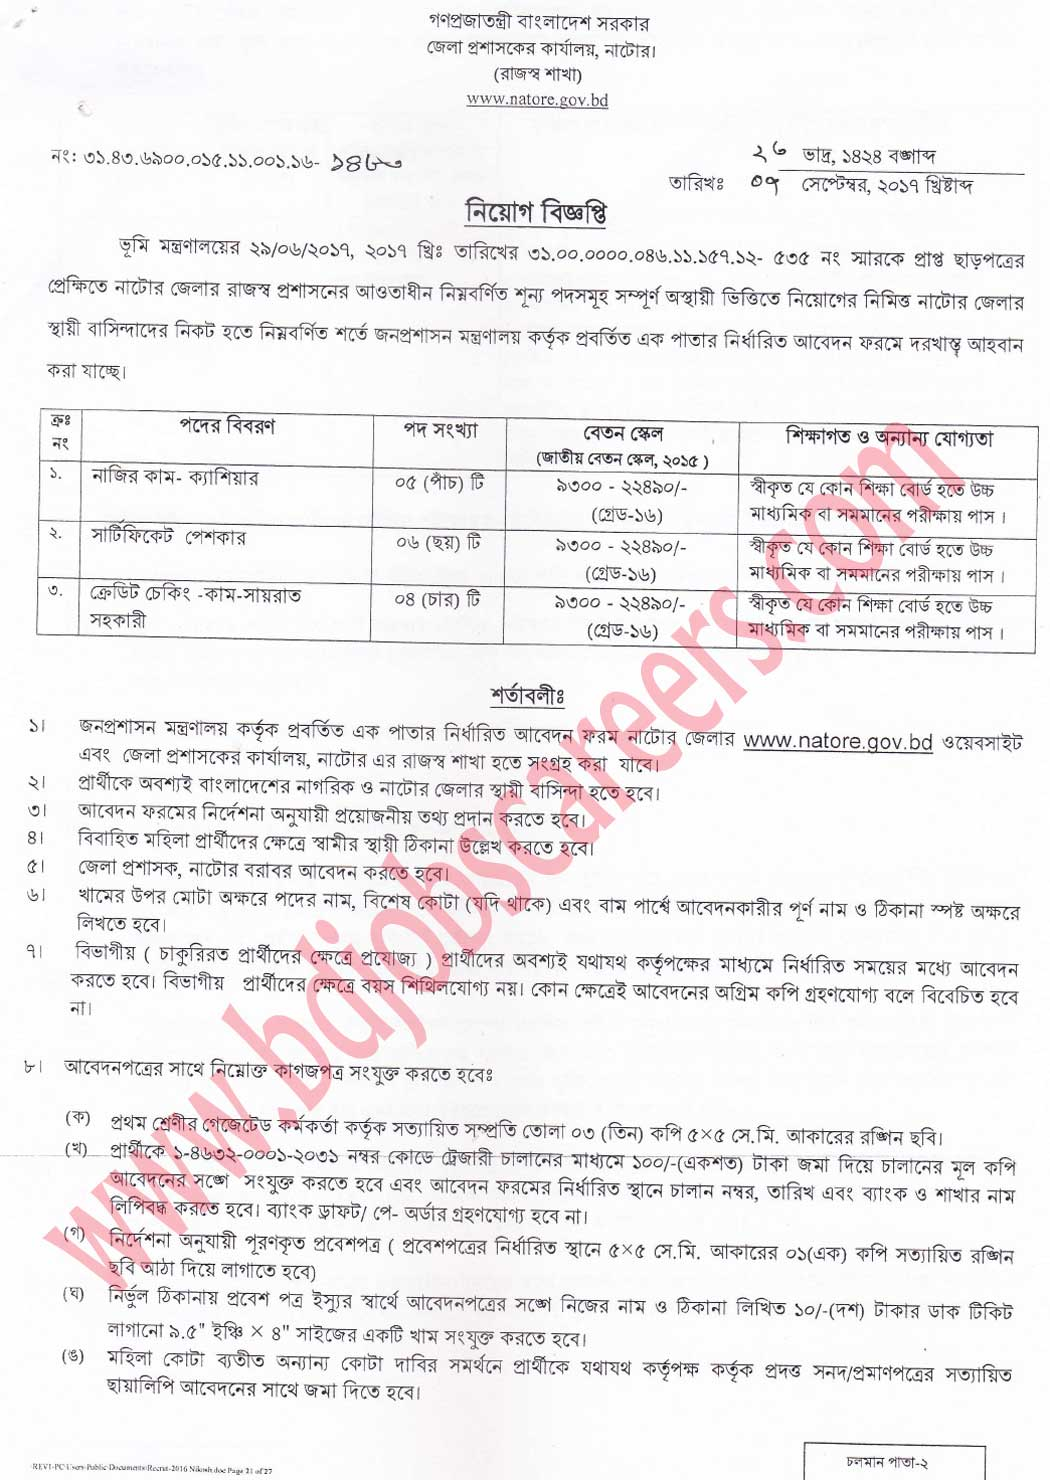 Natore Deputy Commissioner's Office Job Circular 2017